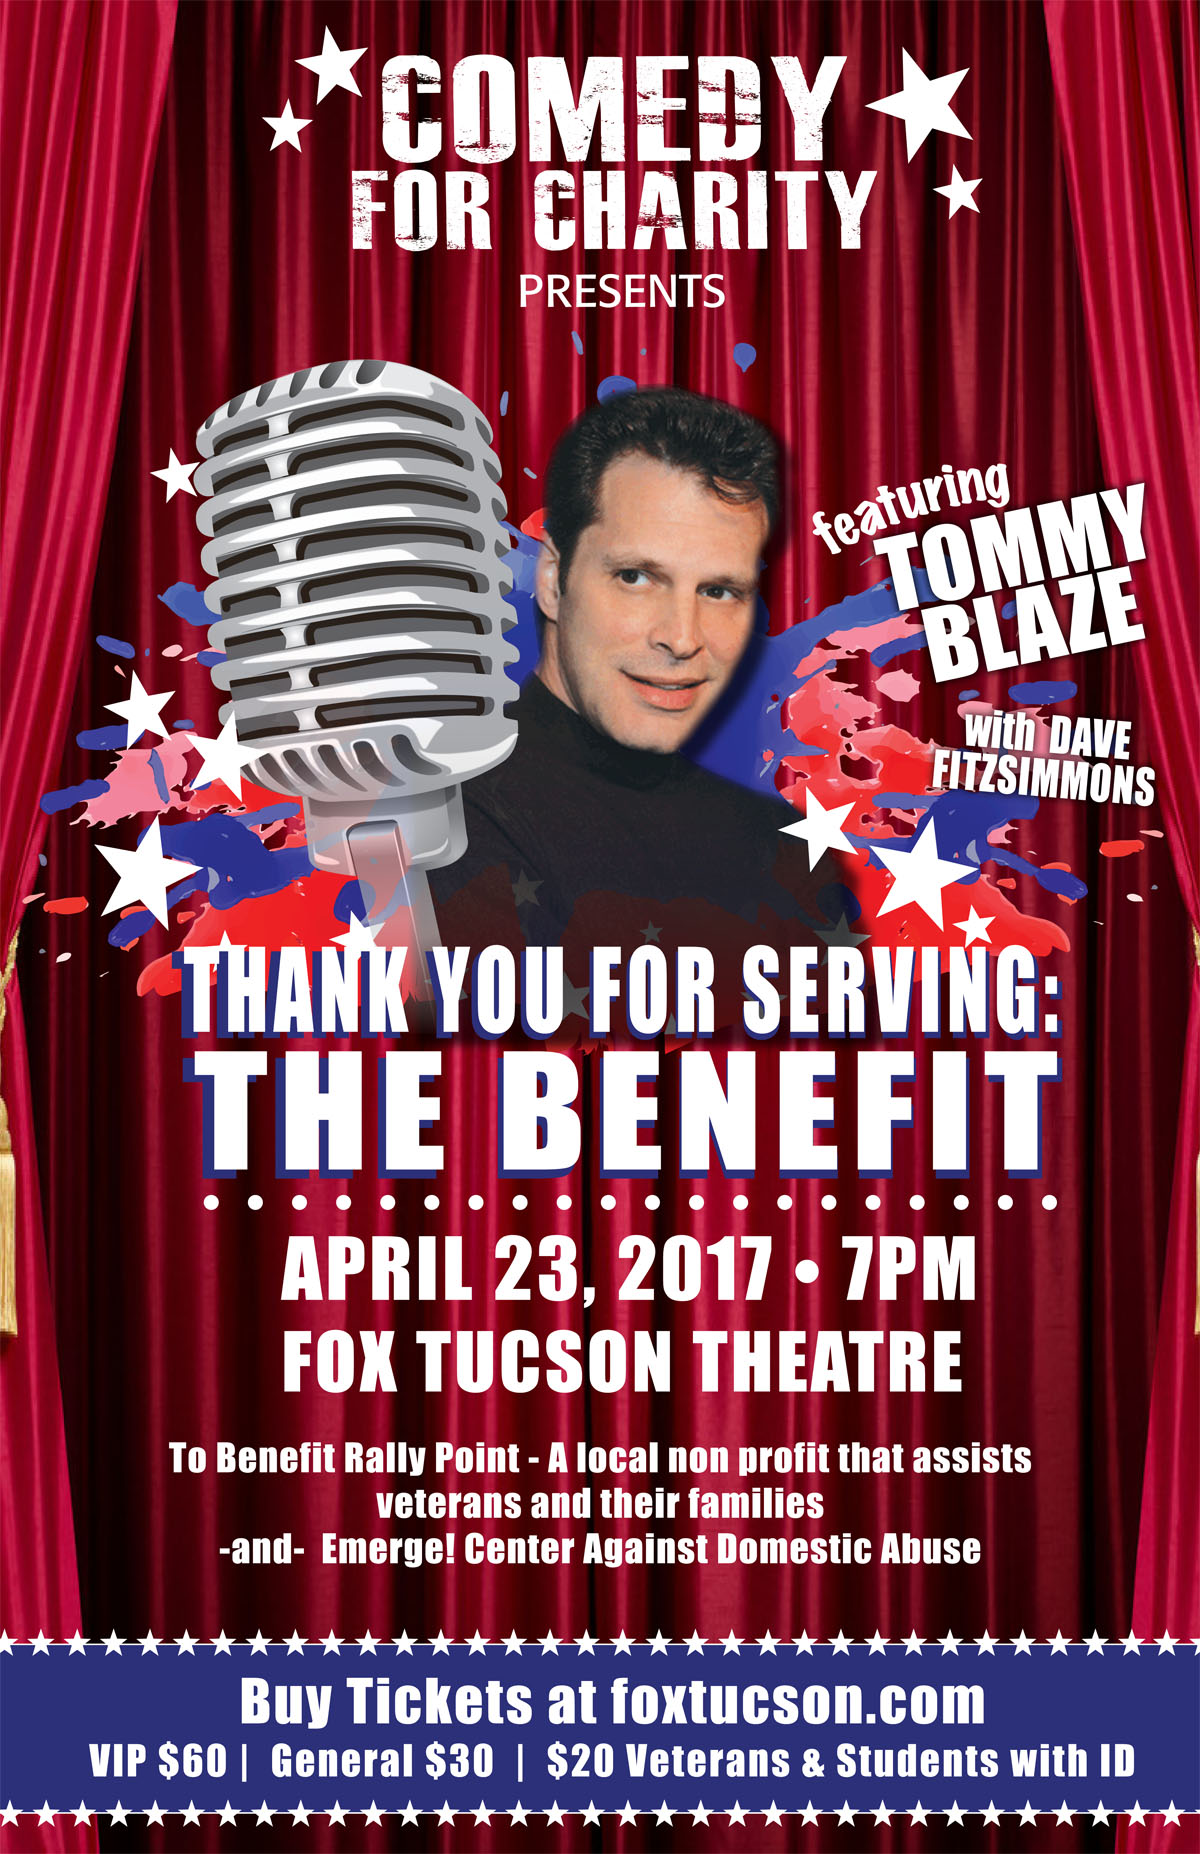 Thank You for Serving: The Benefit Poster